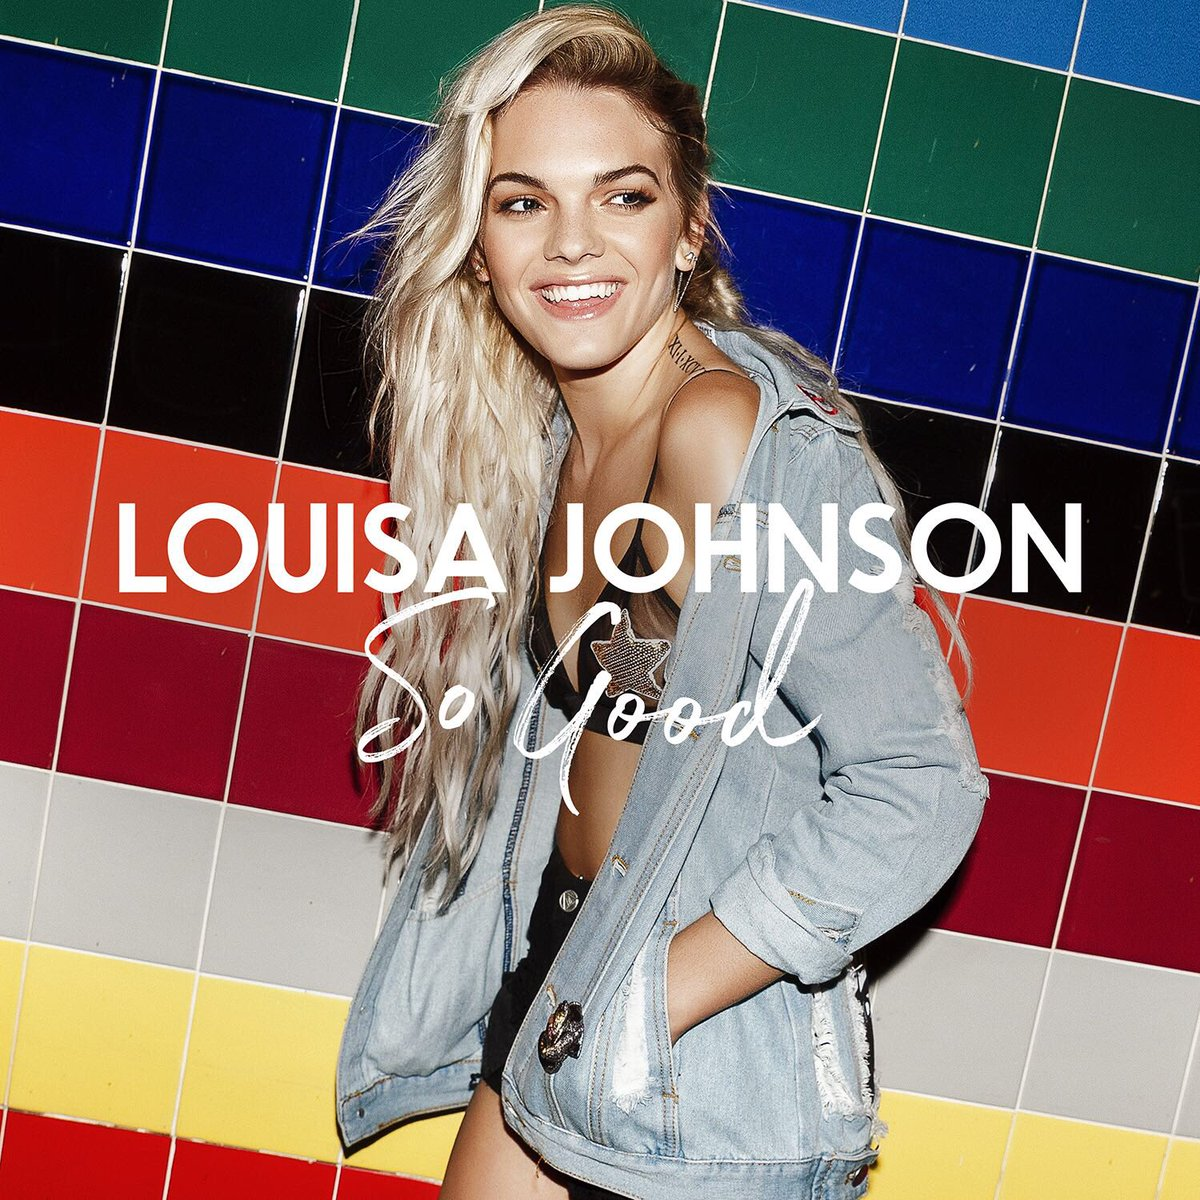 「Louisa Johnson - So Good」的圖片搜尋結果